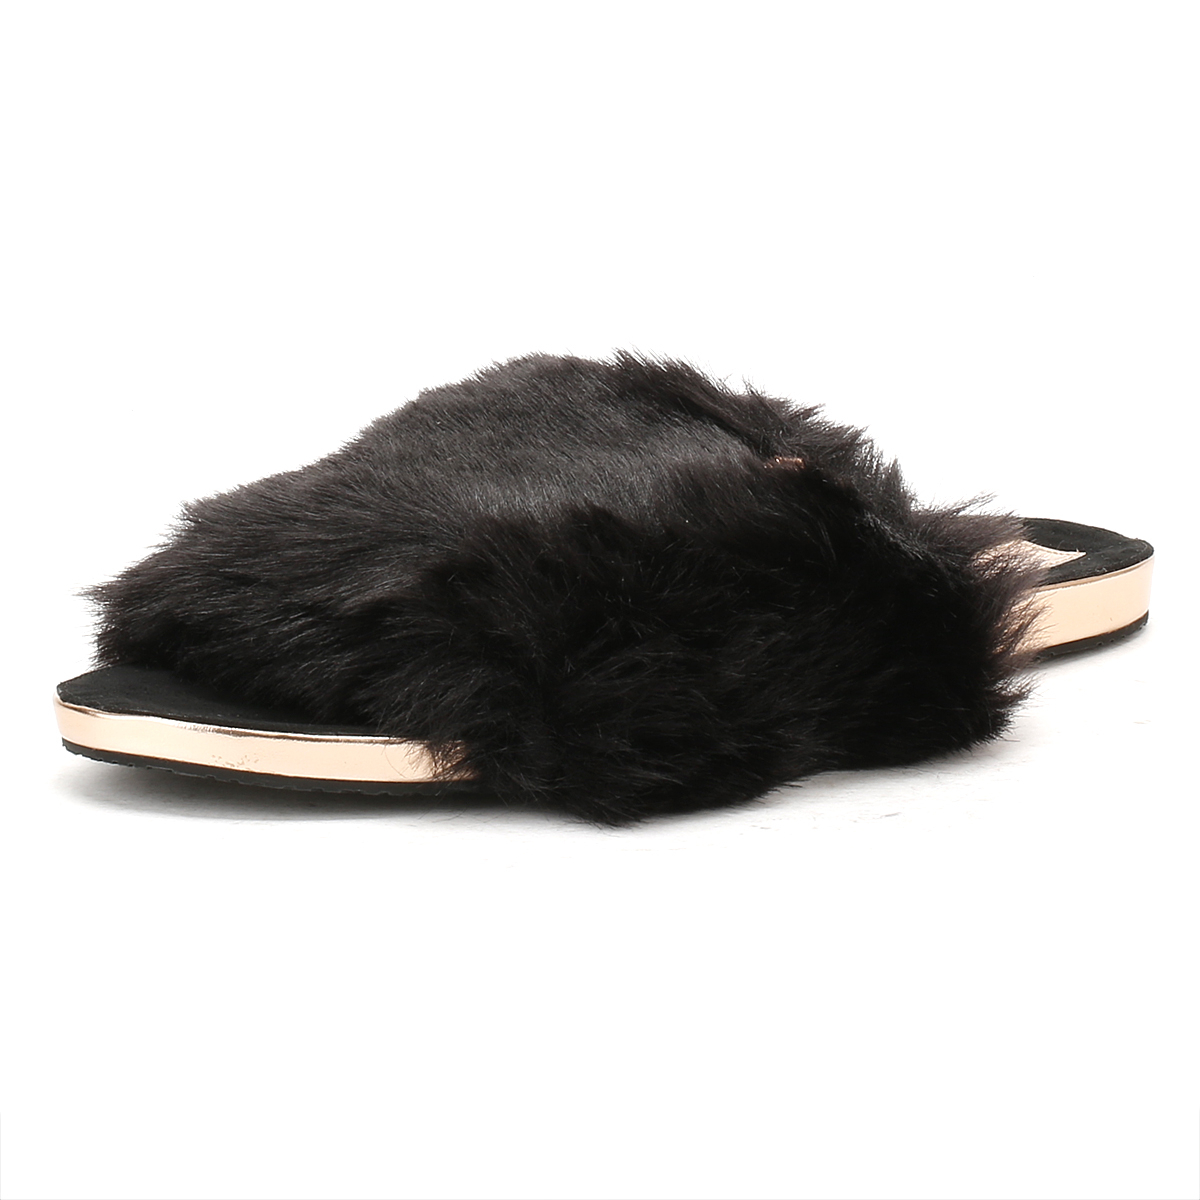 8a39ebc27 Details about Ted Baker Womens Black Pancey Mules Slippers